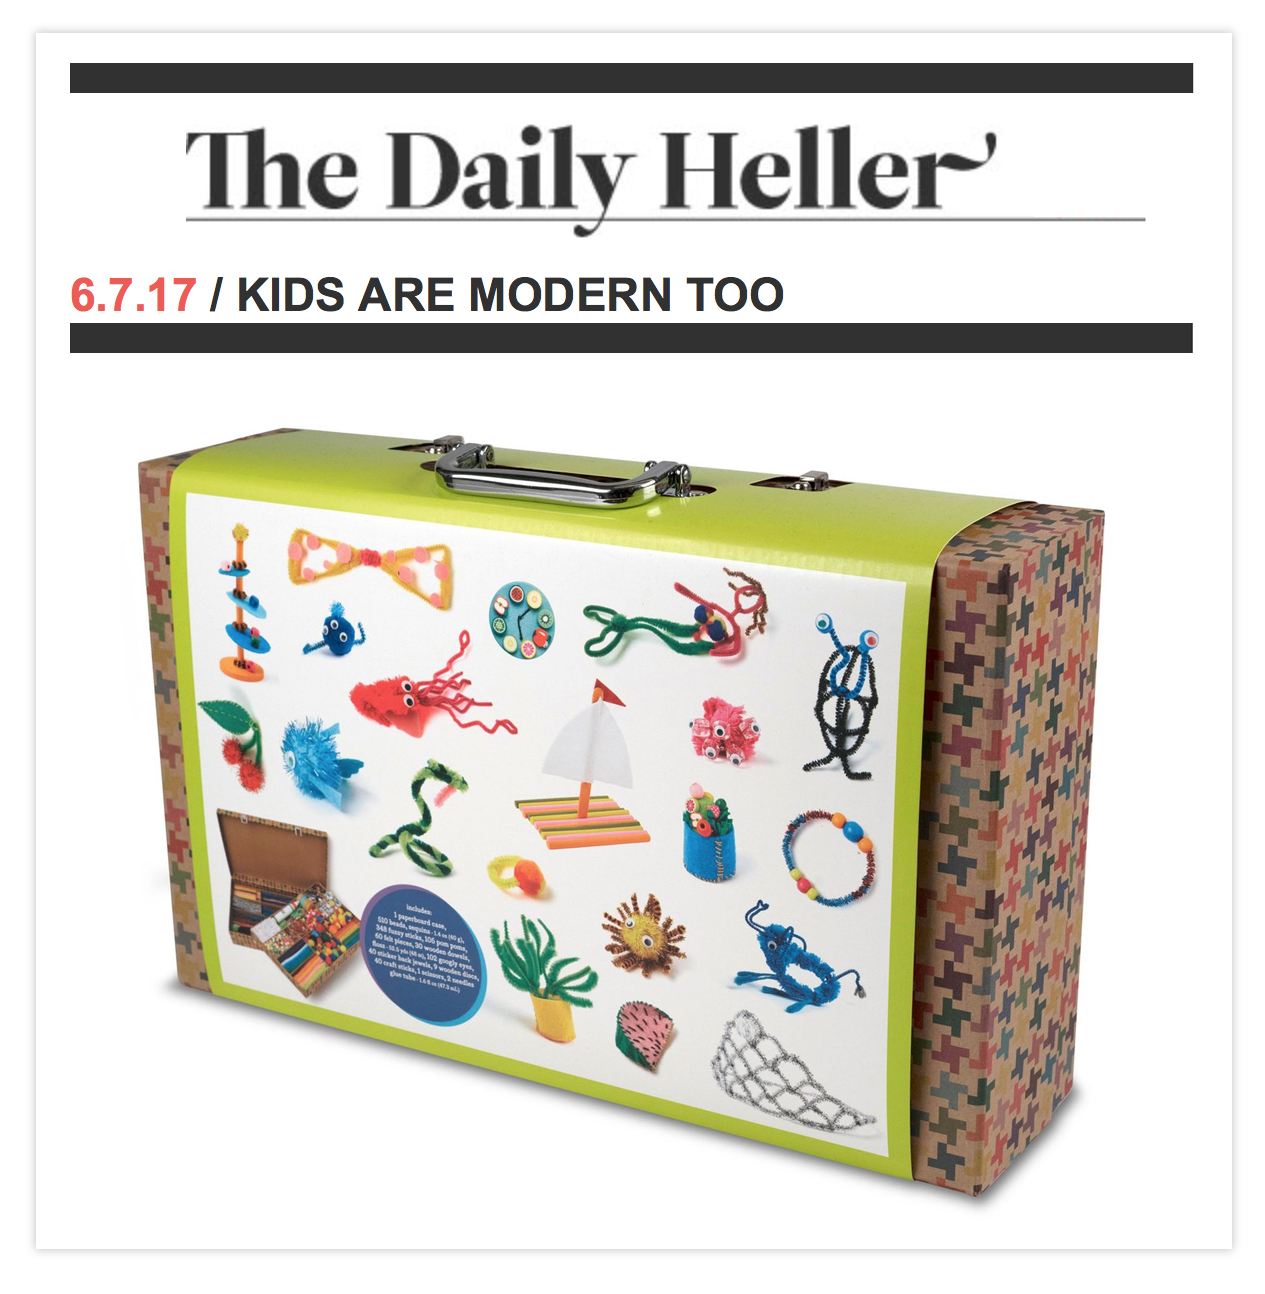 Kid made modern todd oldham studio the daily heller print magazines daily news and insight from graphic designer steven heller has featured an article on kid made modern and an interview buycottarizona Images